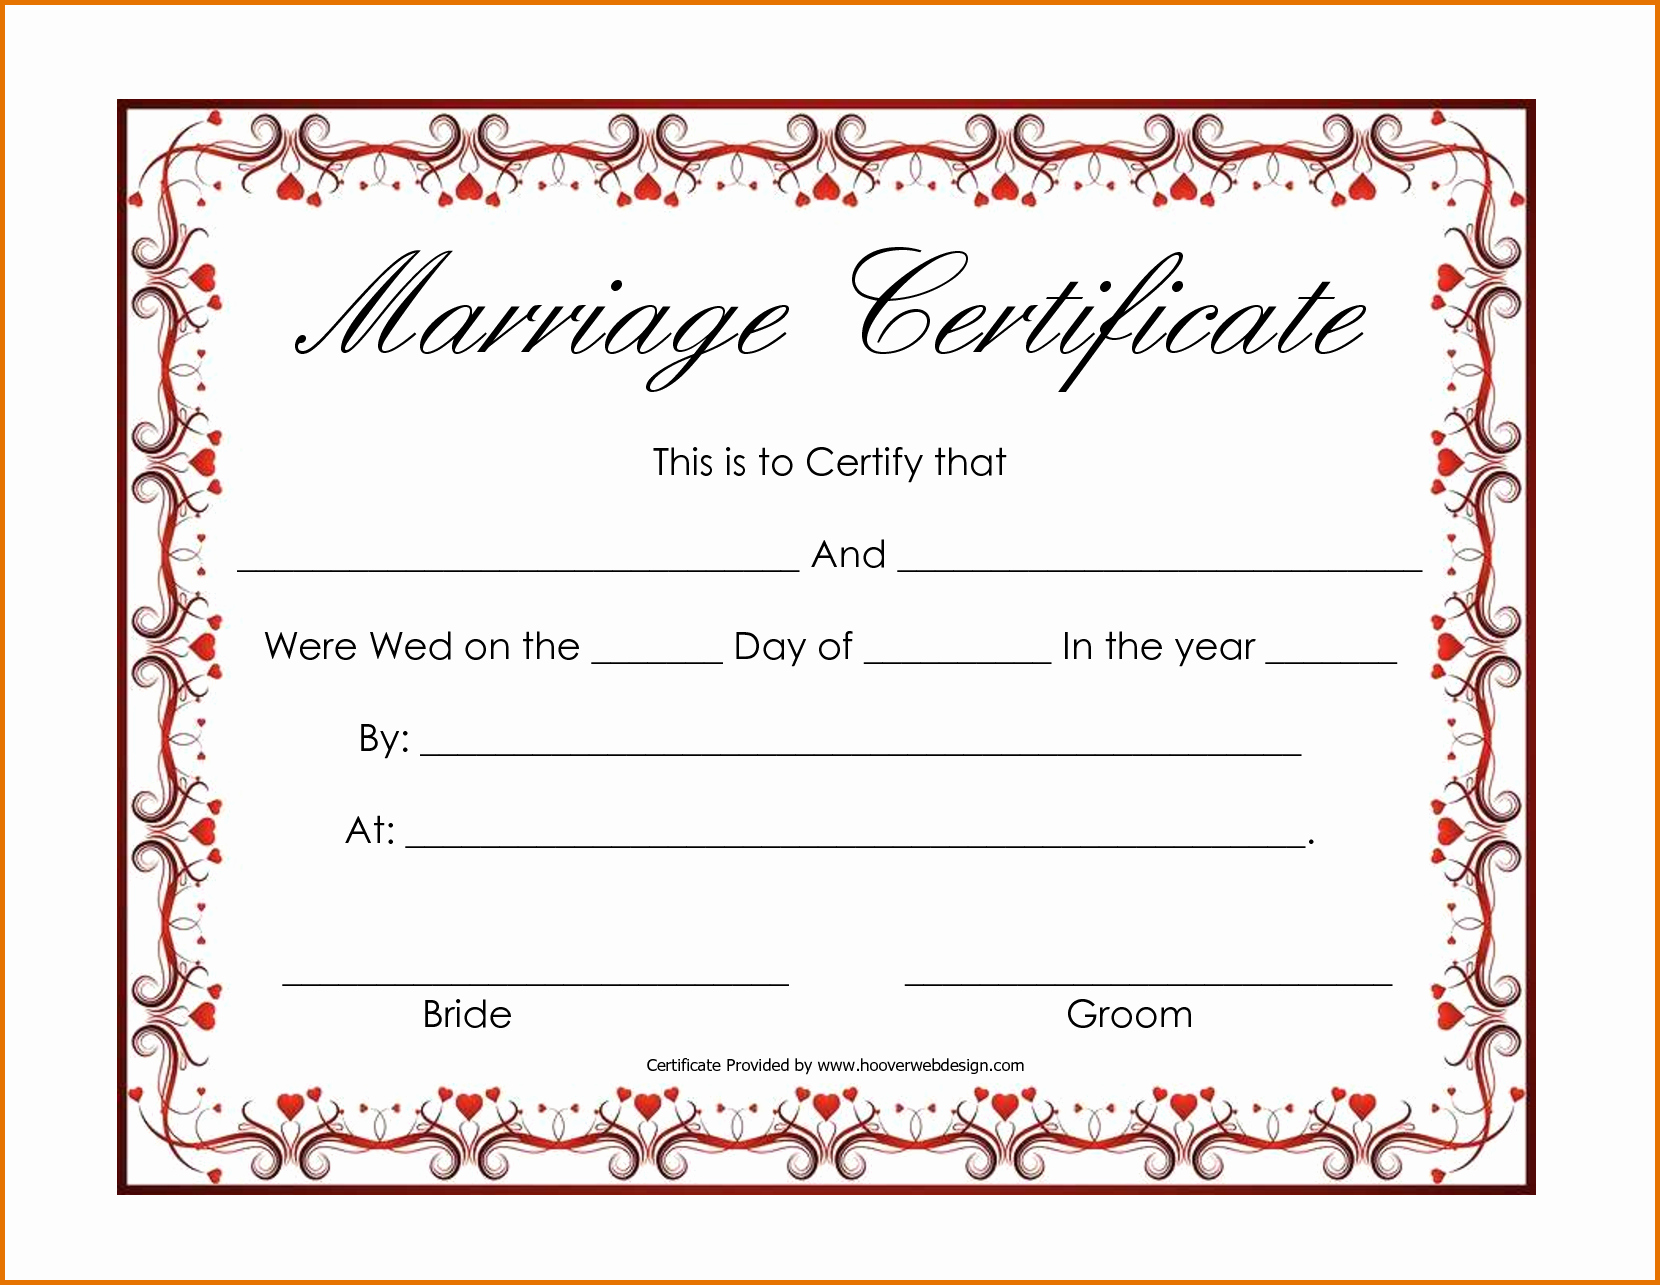 Blank Marriage Certificate Template New Blank Marriage Certificate Templatereference Letters Words